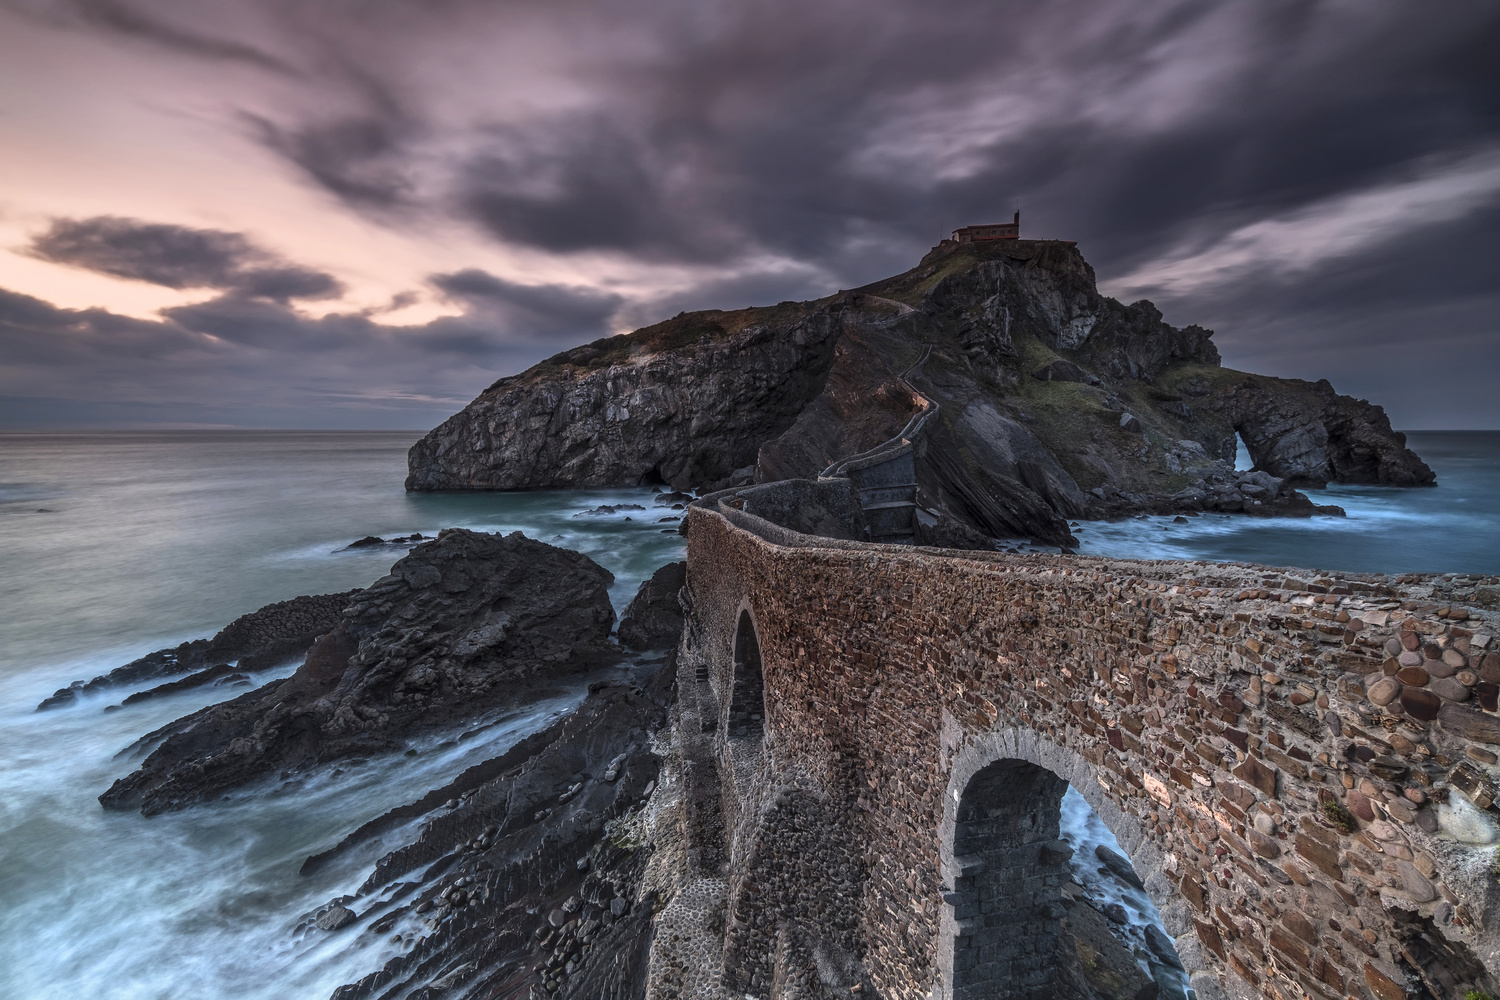 Gaztelugatxe, the Game of Thrones shrine by Andres Moline